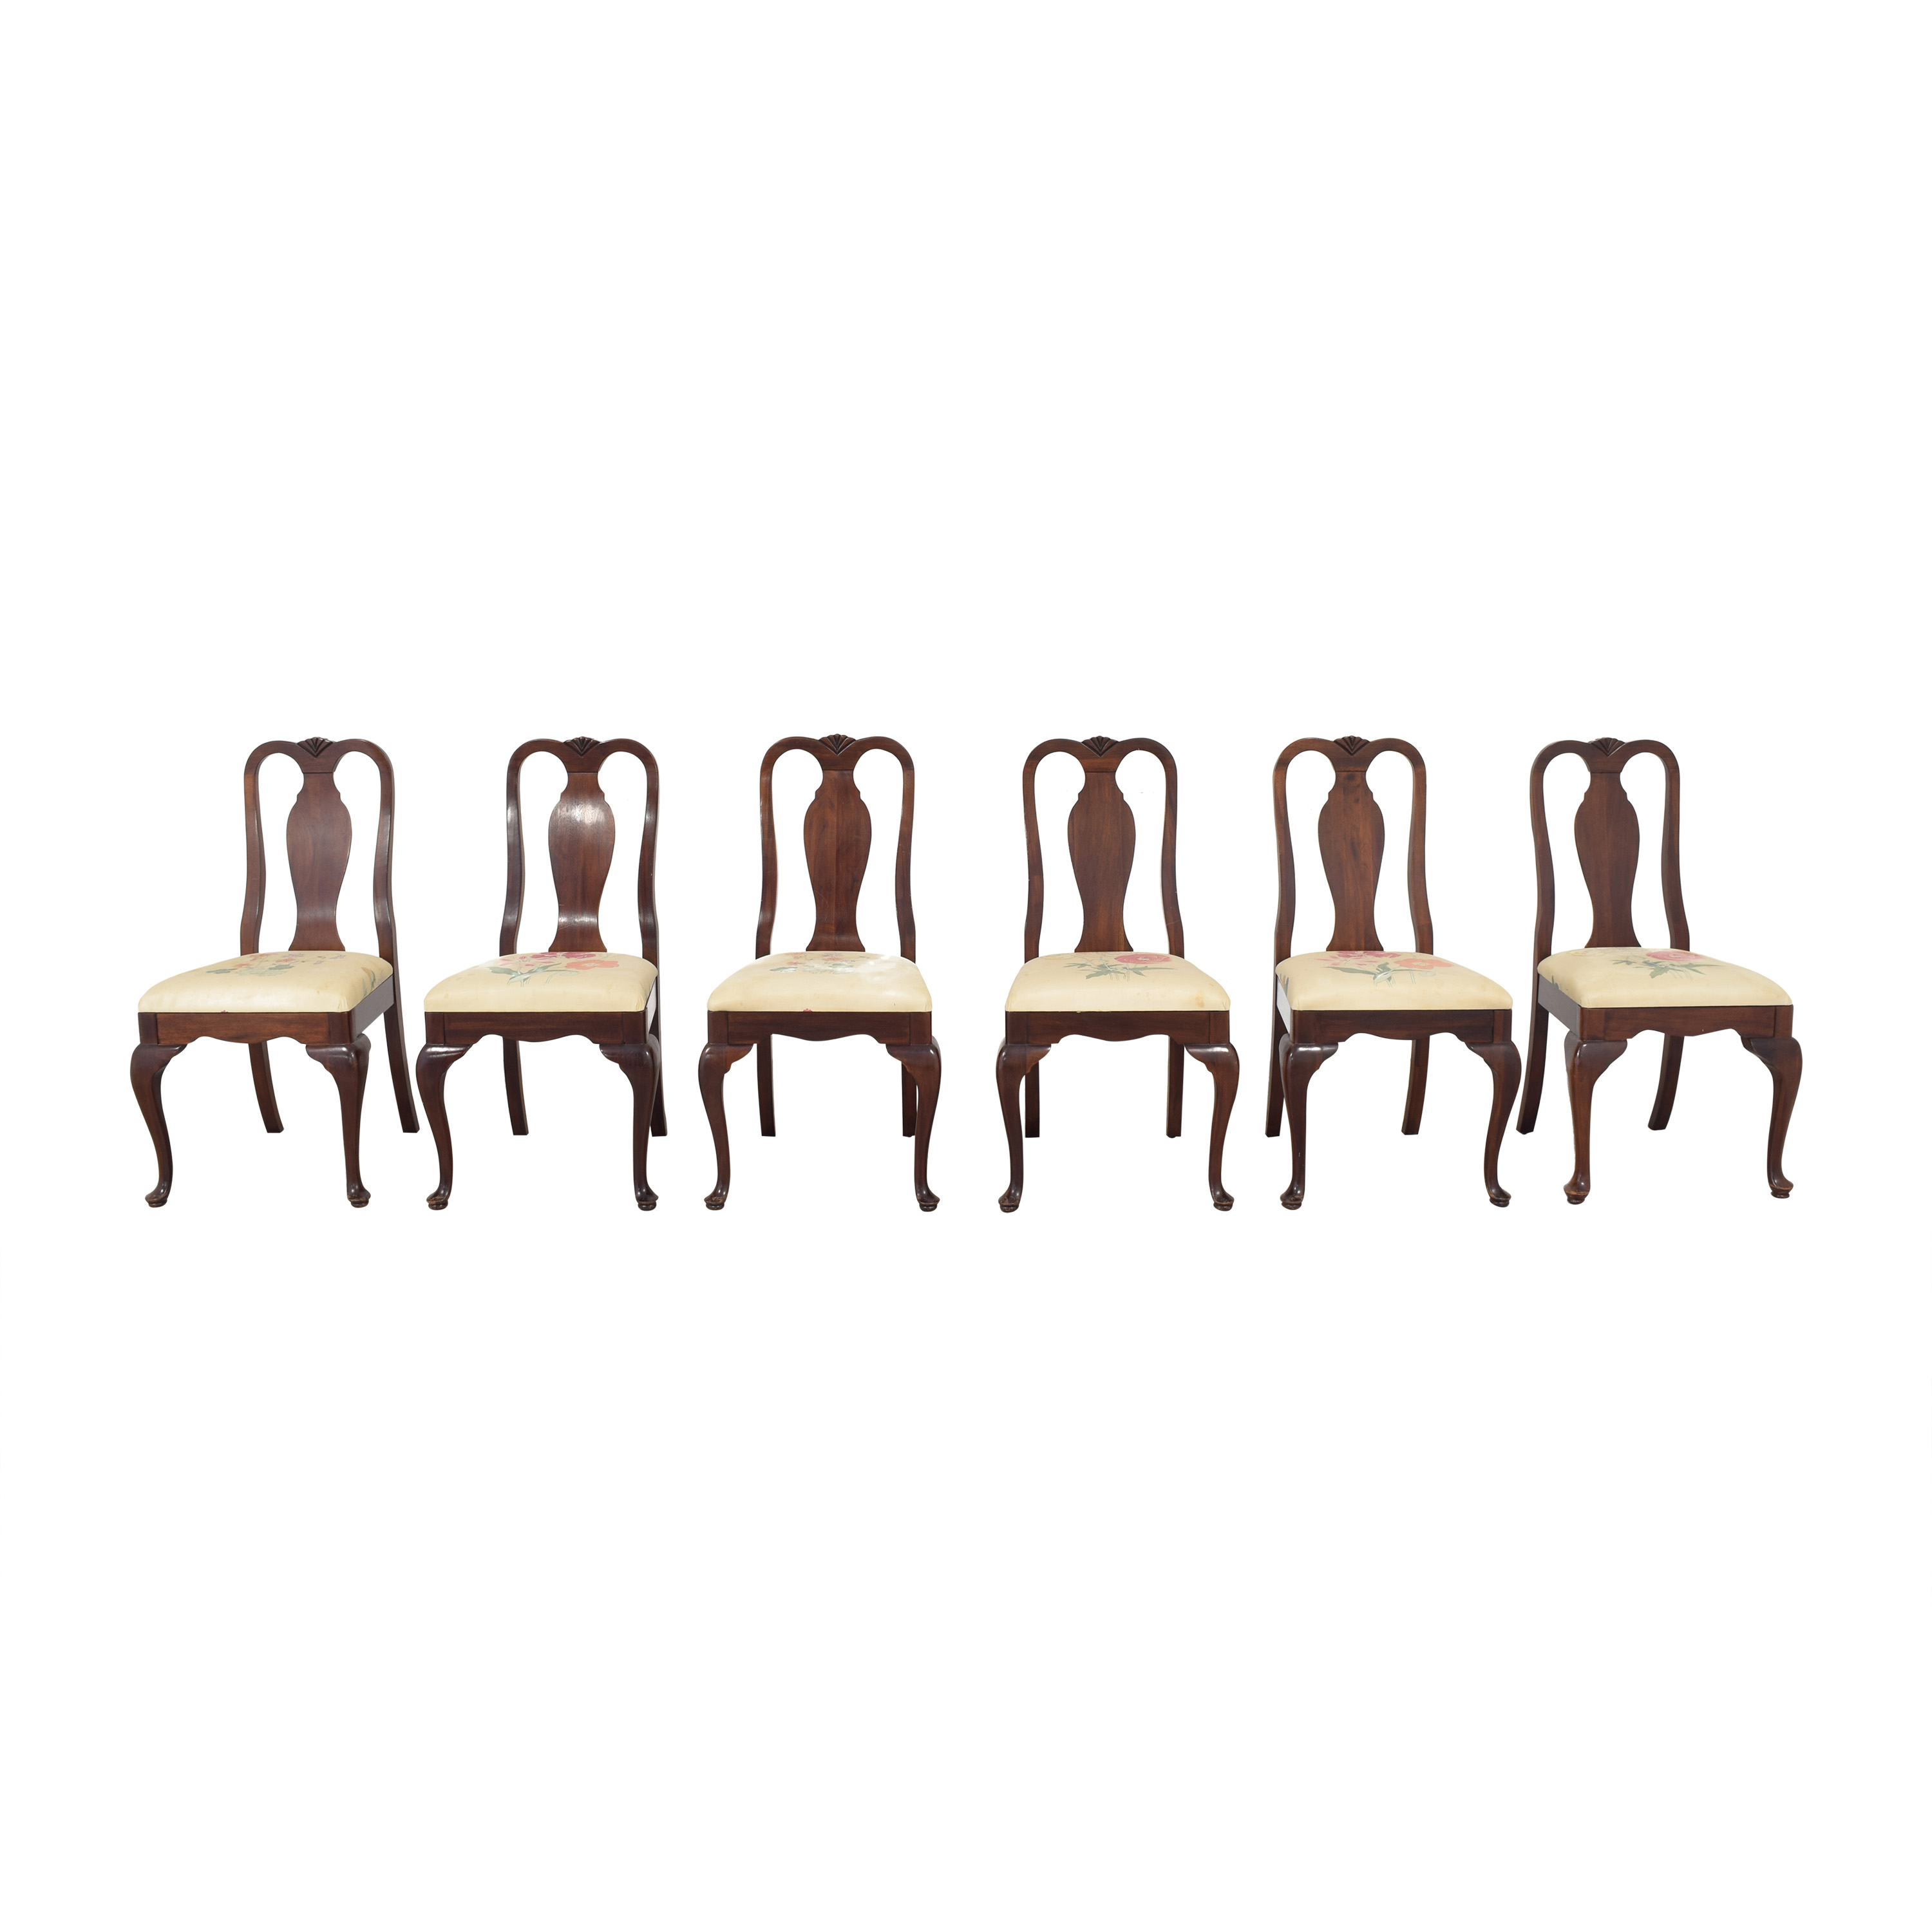 Davis Cabinet Company Davis Cabinet Company Dining Chairs for sale